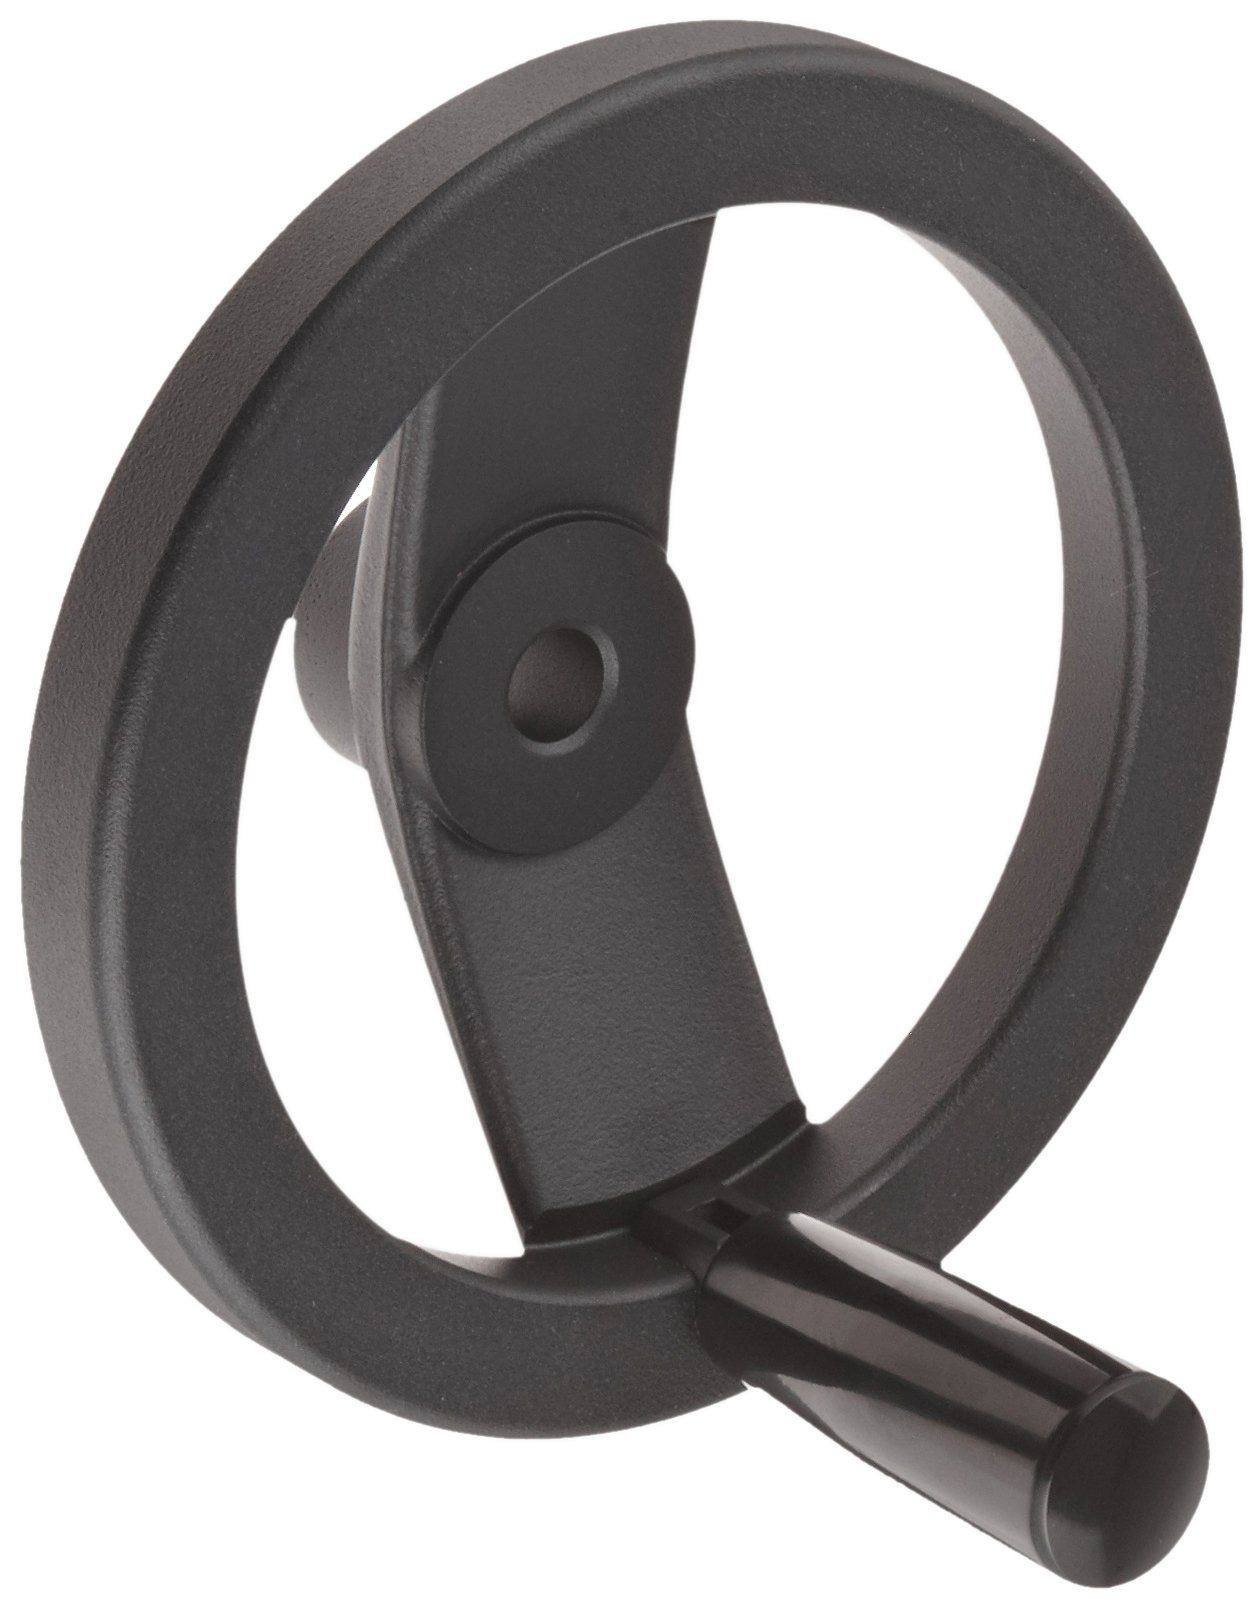 2 Spoked Black Powder Coated Aluminum Dished Hand Wheel with Fold-A-Way Handle, 6'' Diameter, 1/2'' Hole Diameter (Pack of 1)